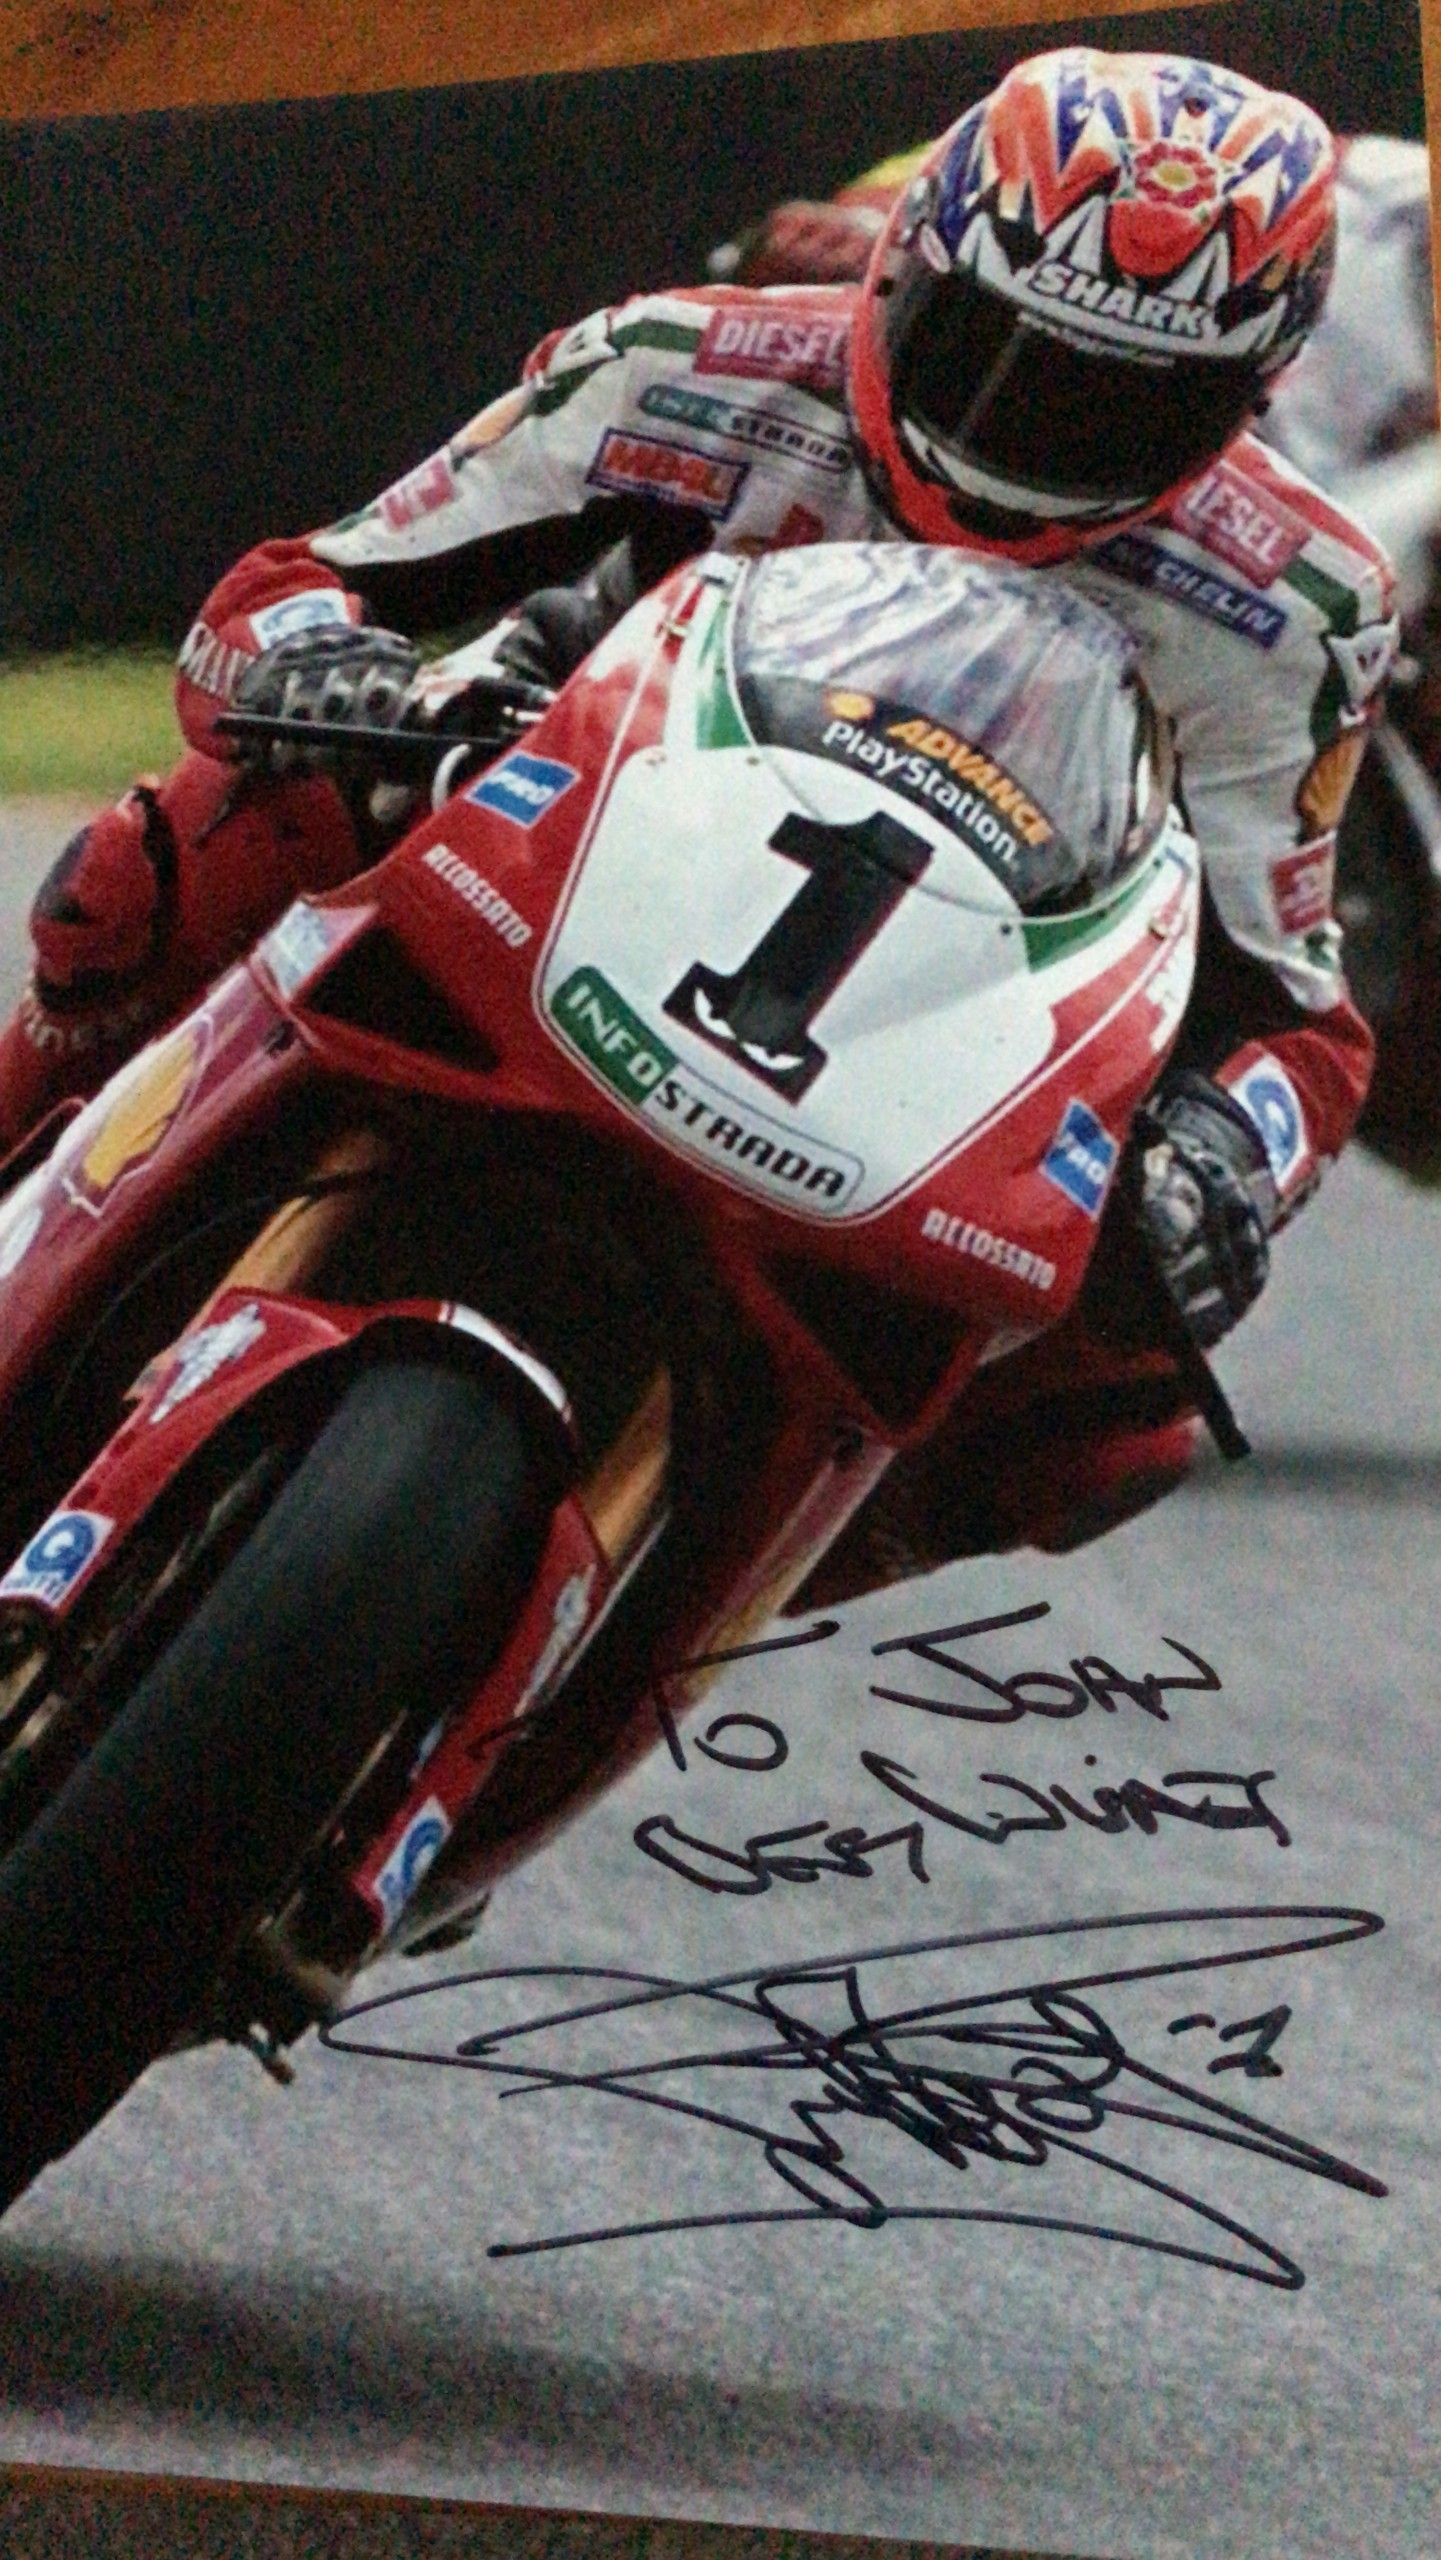 World Champion Carl Fogarty sent me a signed photo - MEGA!